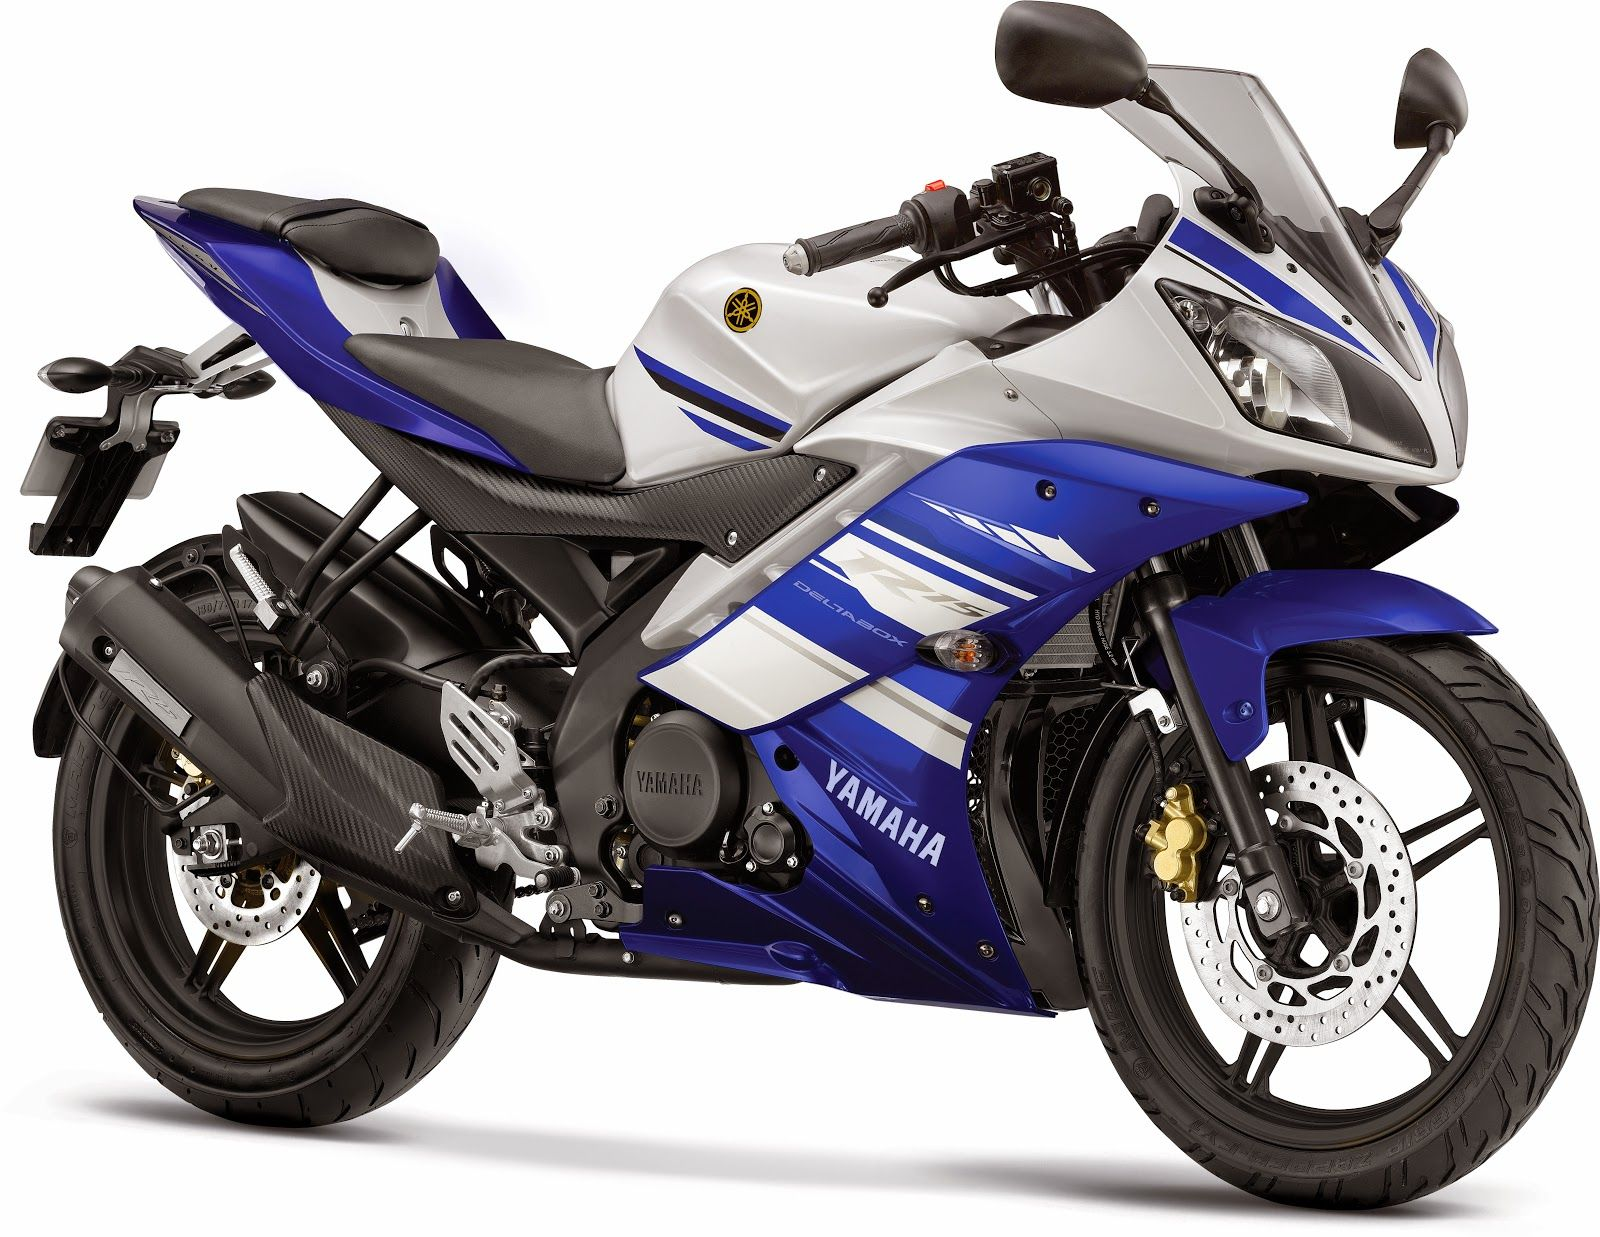 Best Bikes in India 2019 | Check Price, Images & Specs - Gaadi